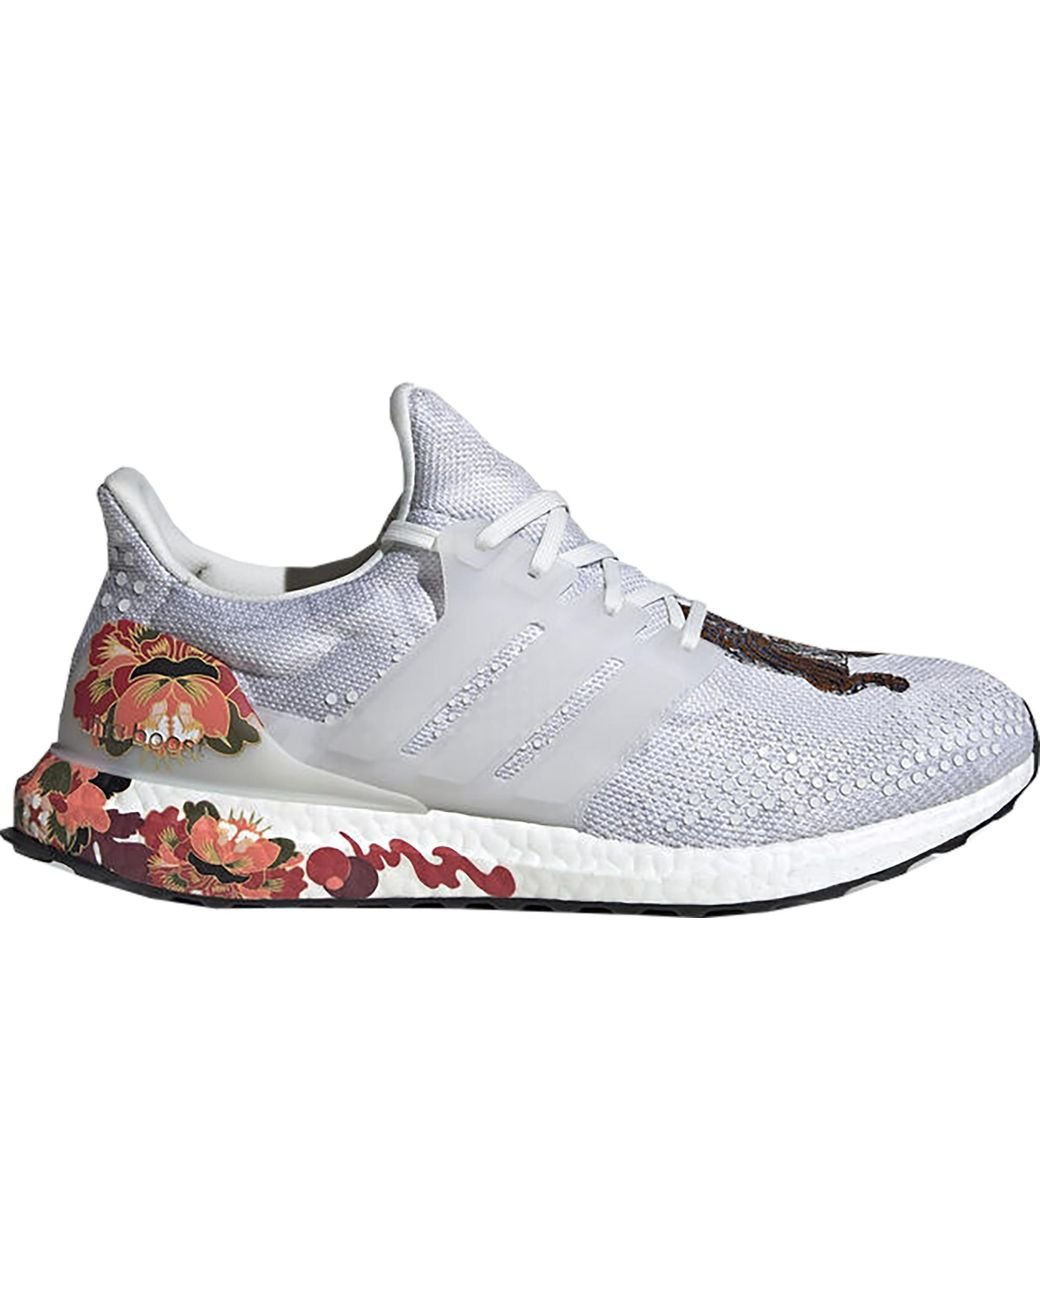 adidas Ultra Boost 4.0 Chinese New Year 2019 (Sample)